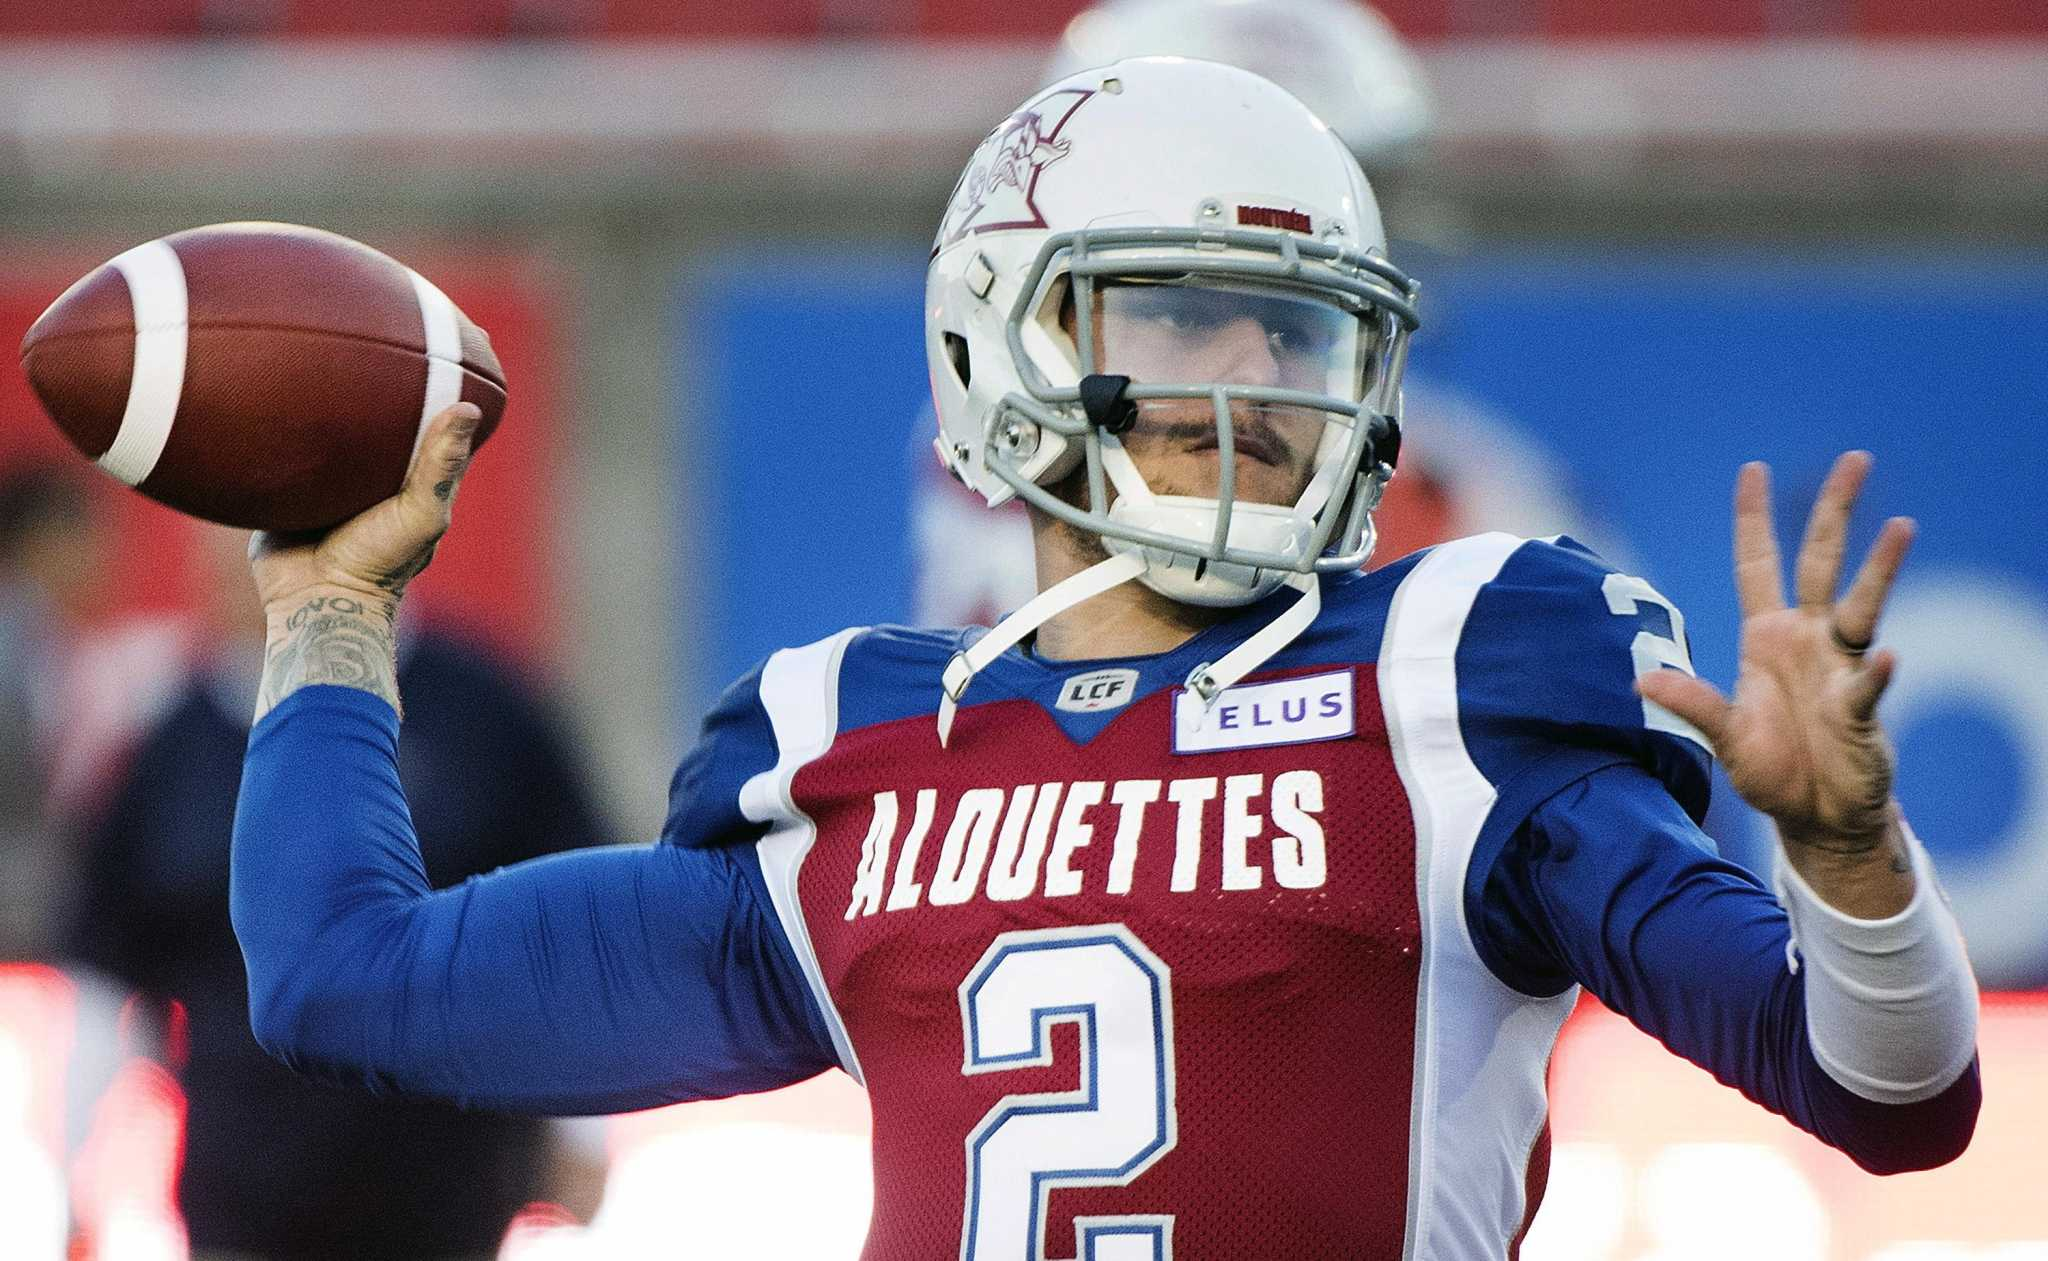 San Antonio Commanders GM Johnston says AAF has contacted Manziel